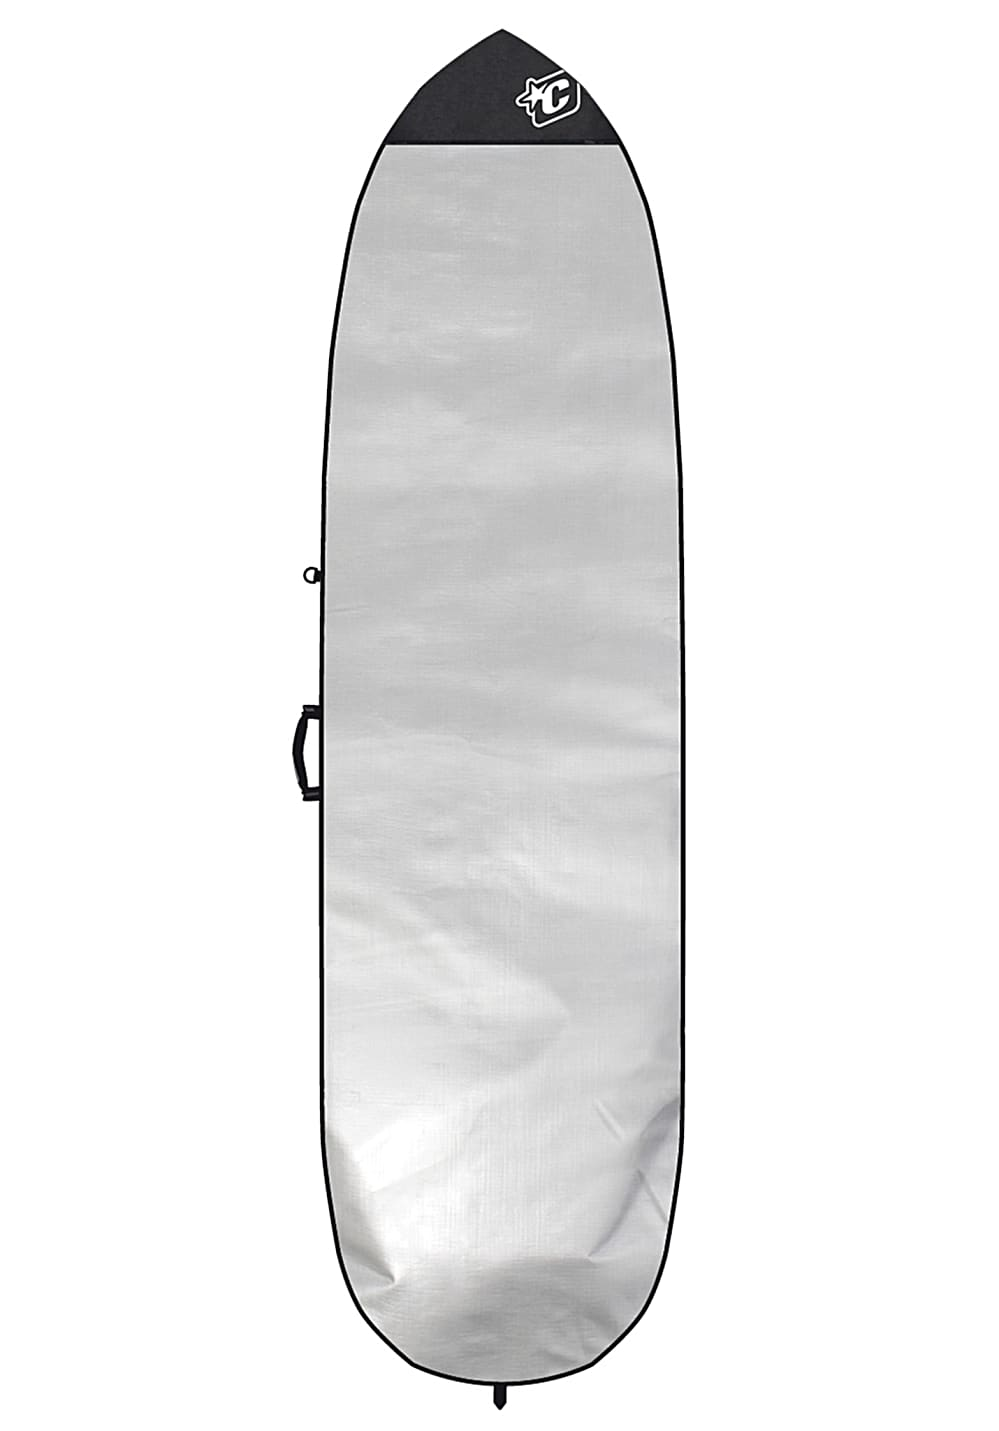 Creatures of Leisure Retro Fish Lite Cover 6´3´´ Surfboardtasche - Silber